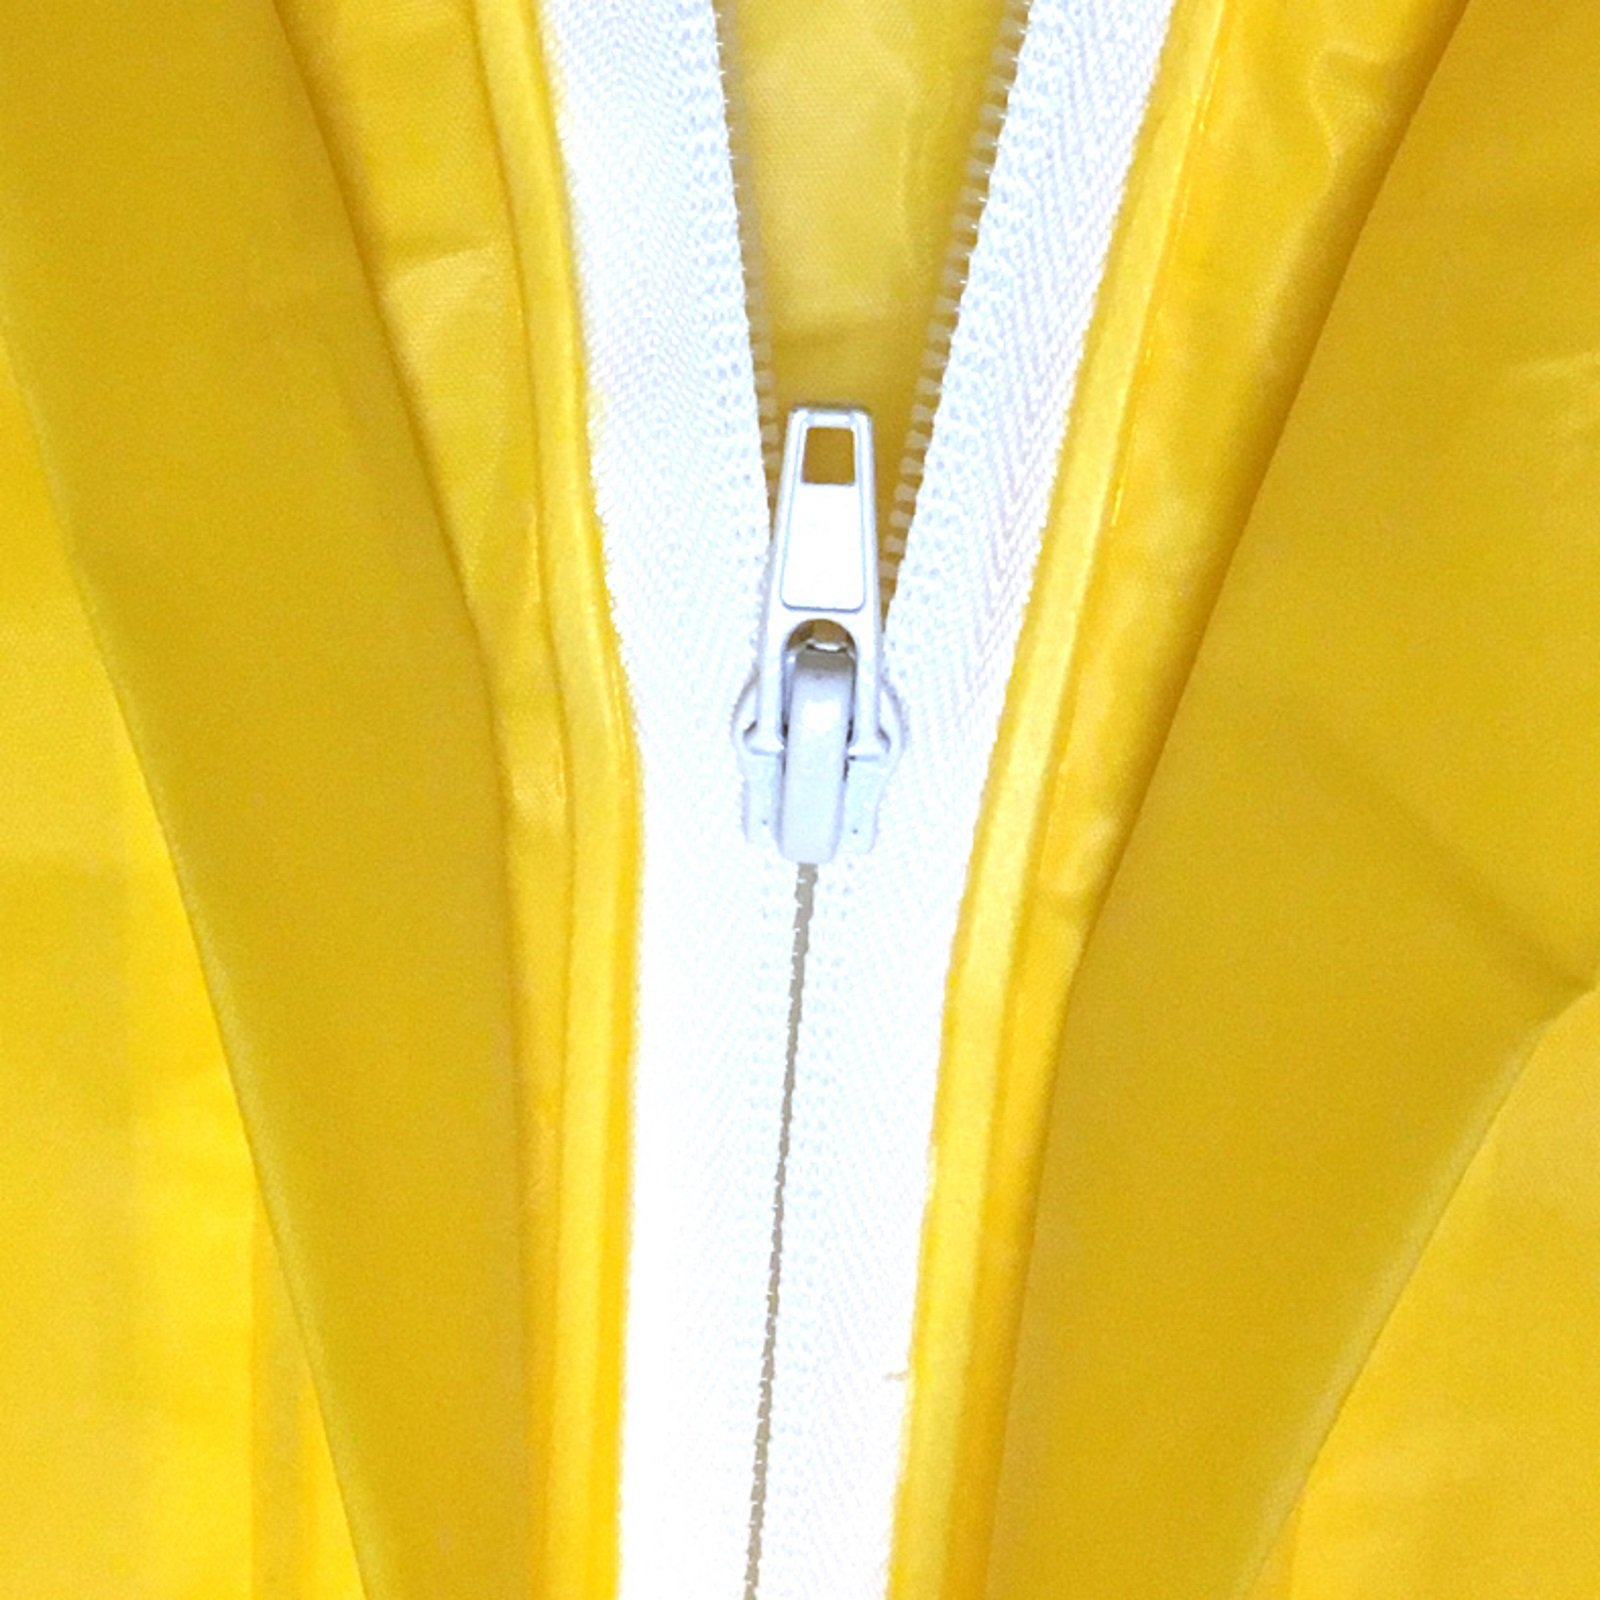 TRIBUTE Safe PVC Free Kids Rain Coat Boys or Girls Ages 7-12 Rain Poncho For Children With Zipper Fun Raincoat, Yellow Duck by TRIBUTE (Image #3)